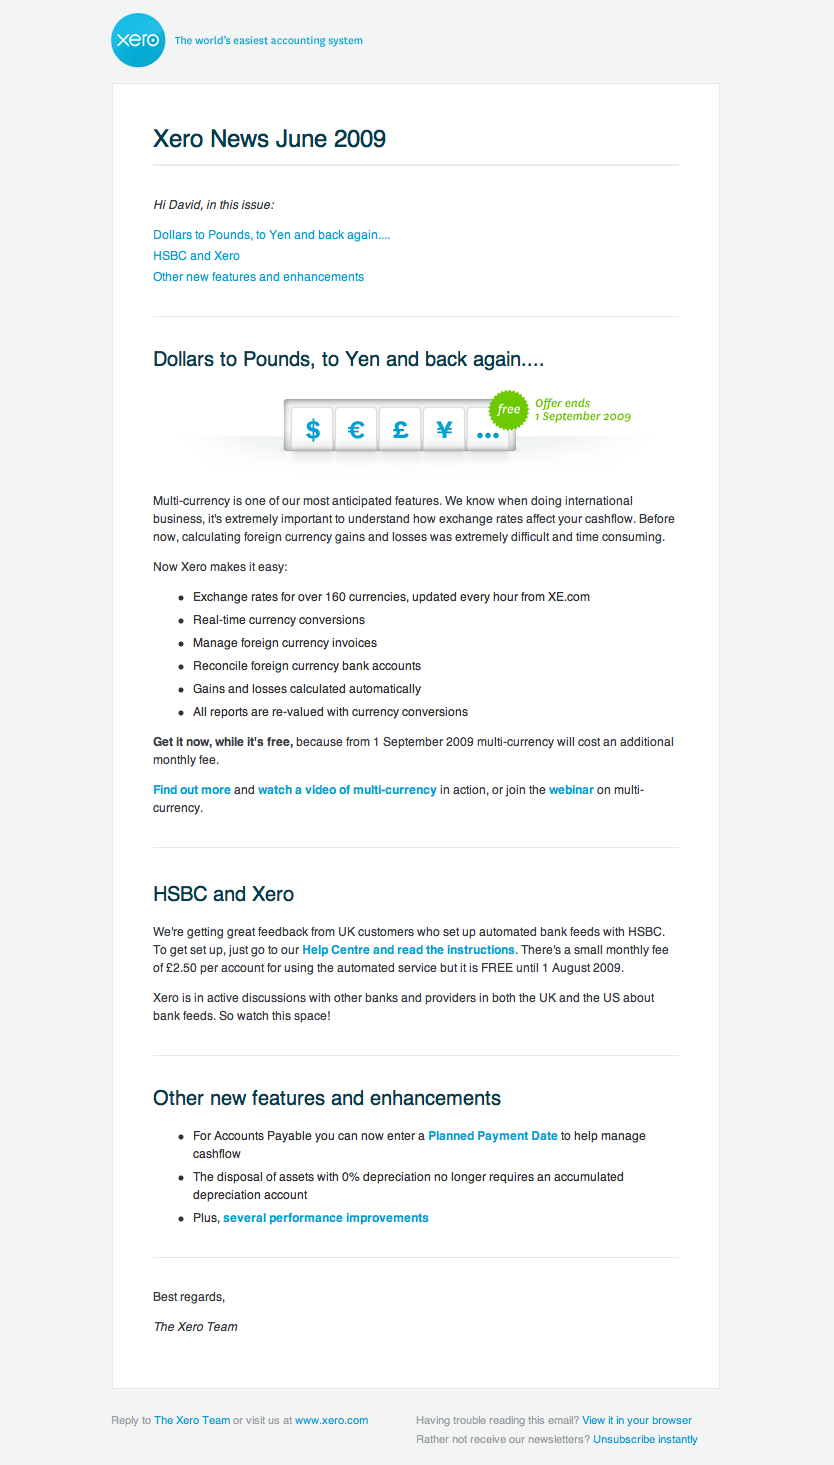 Xero Newsletter from 2009